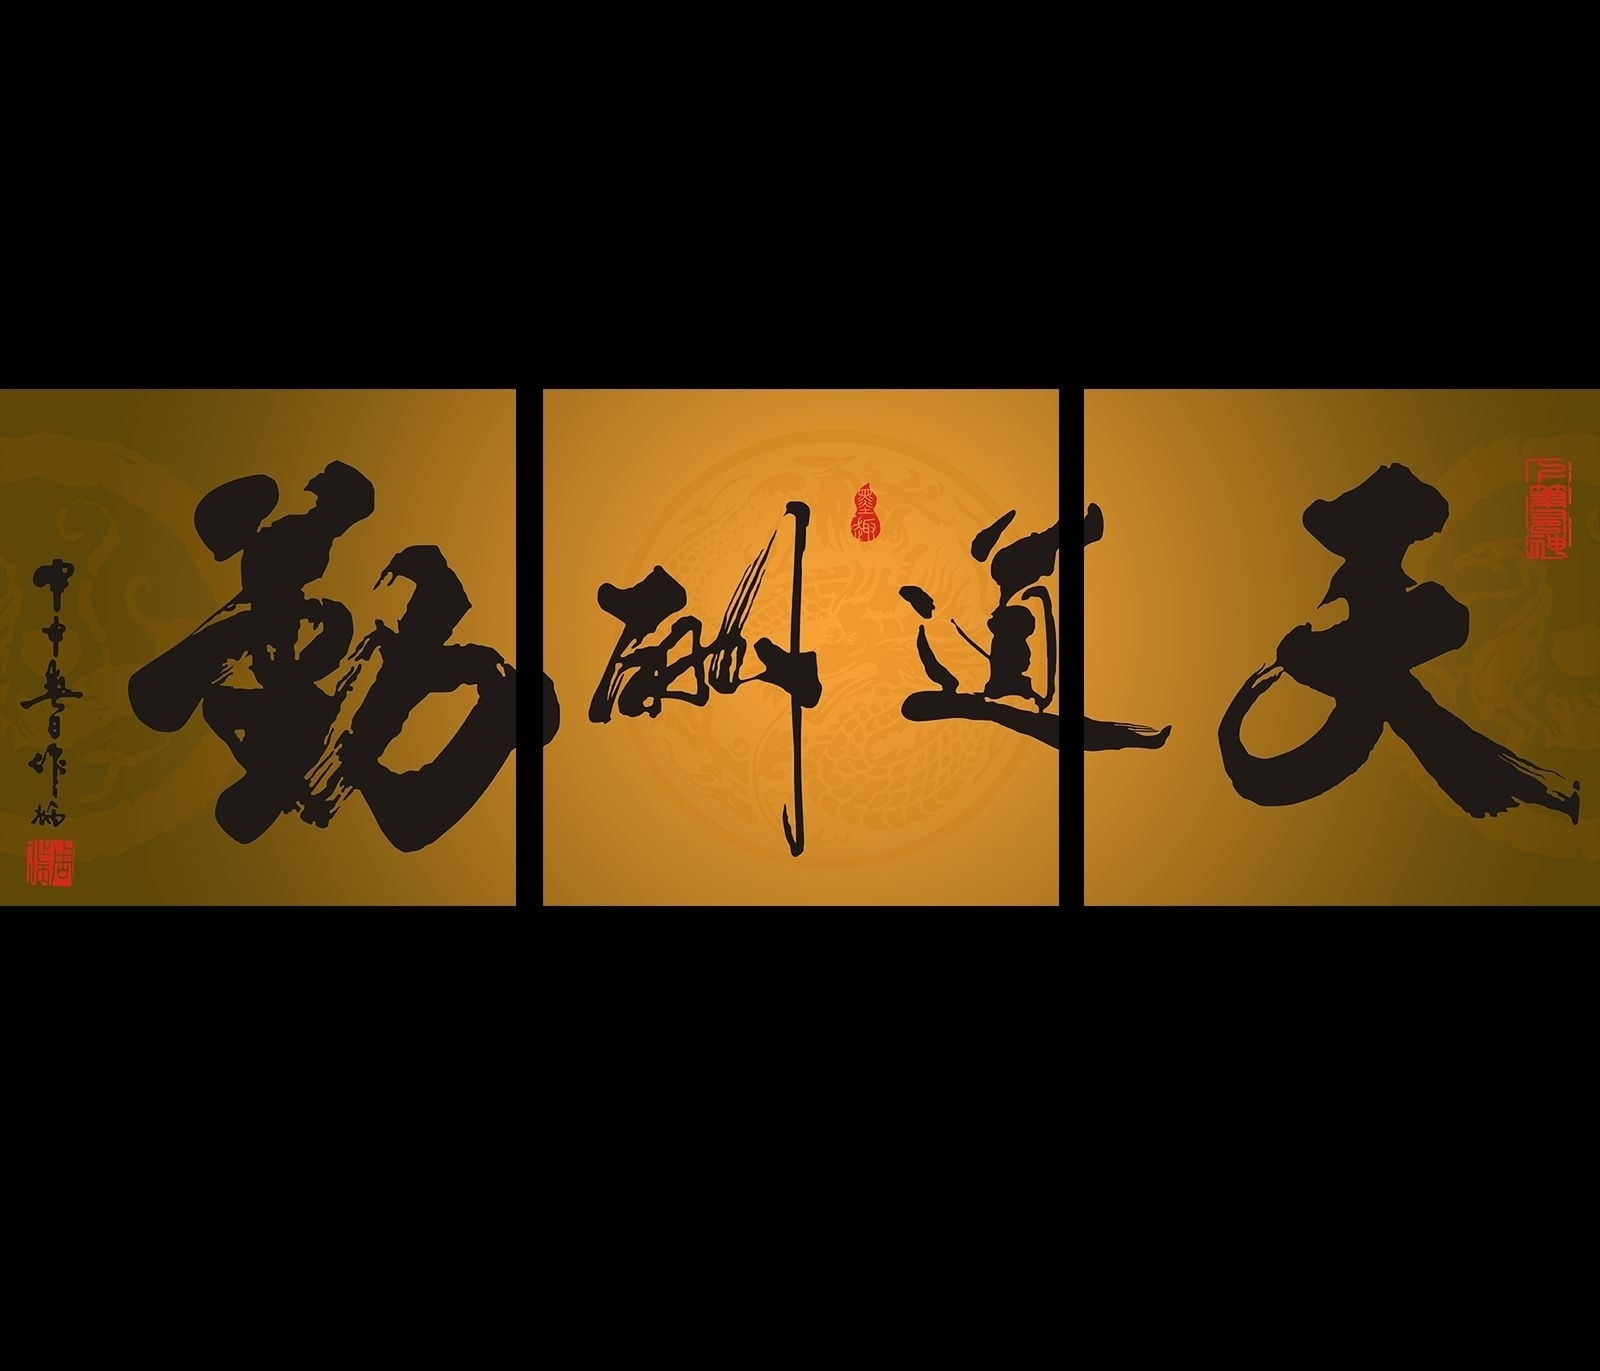 Beautiful Asian Calligraphy Wall Art | Wall Decorations With Regard To Latest Chinese Wall Art (View 5 of 20)